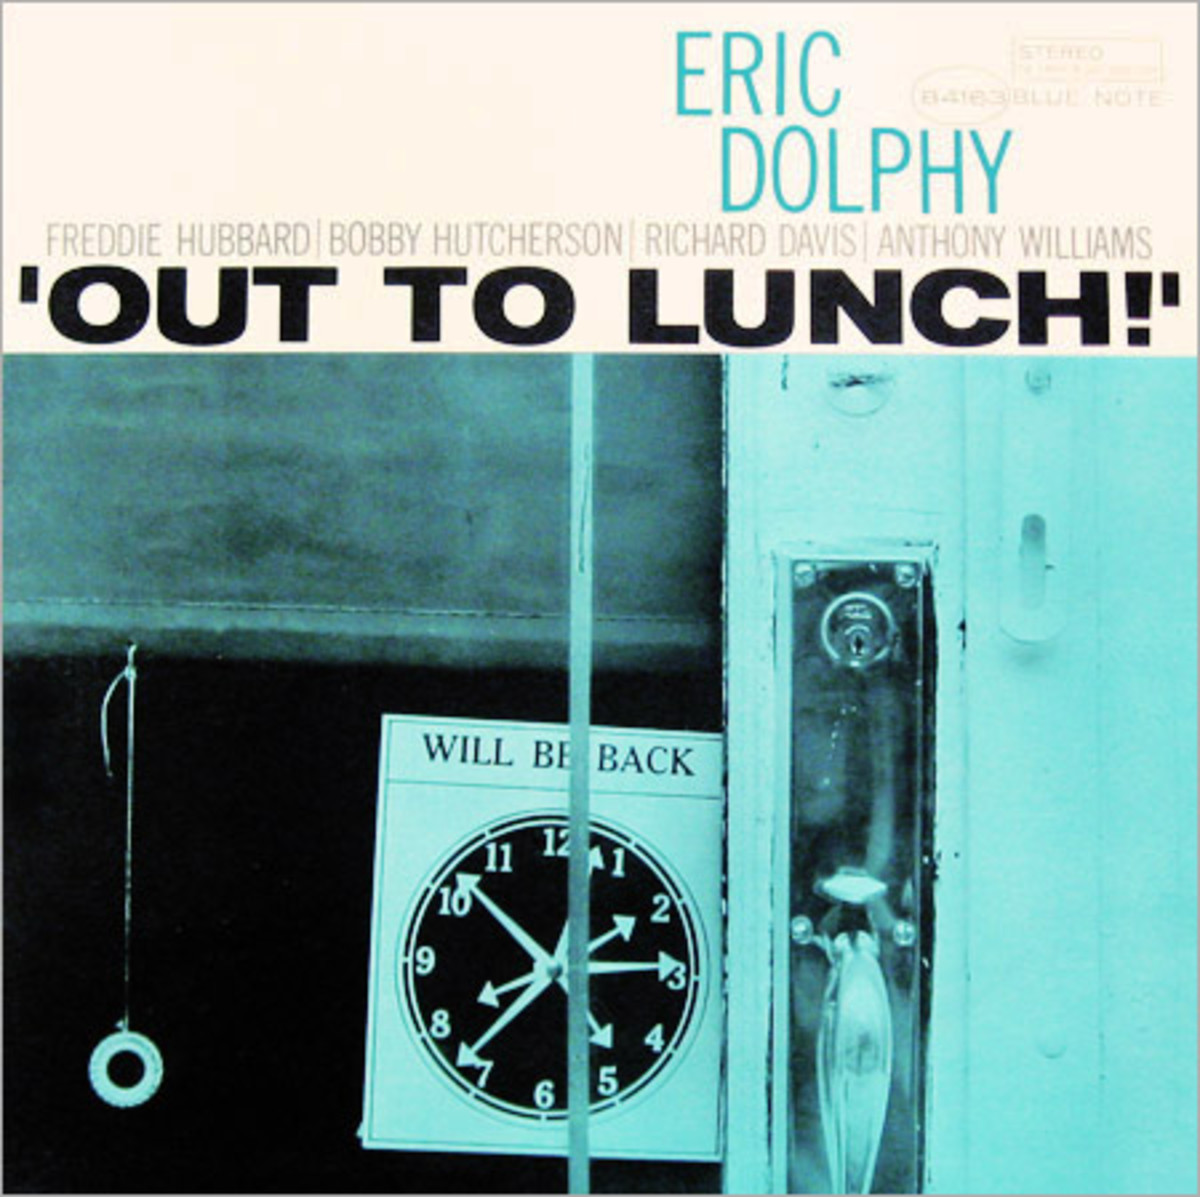 """Eric Dolphy """"Out To Lunch"""" Blue Note Records 4163 12"""" LP Vinyl Record (1964) Album Cover Design & Photo by Reid Miles"""